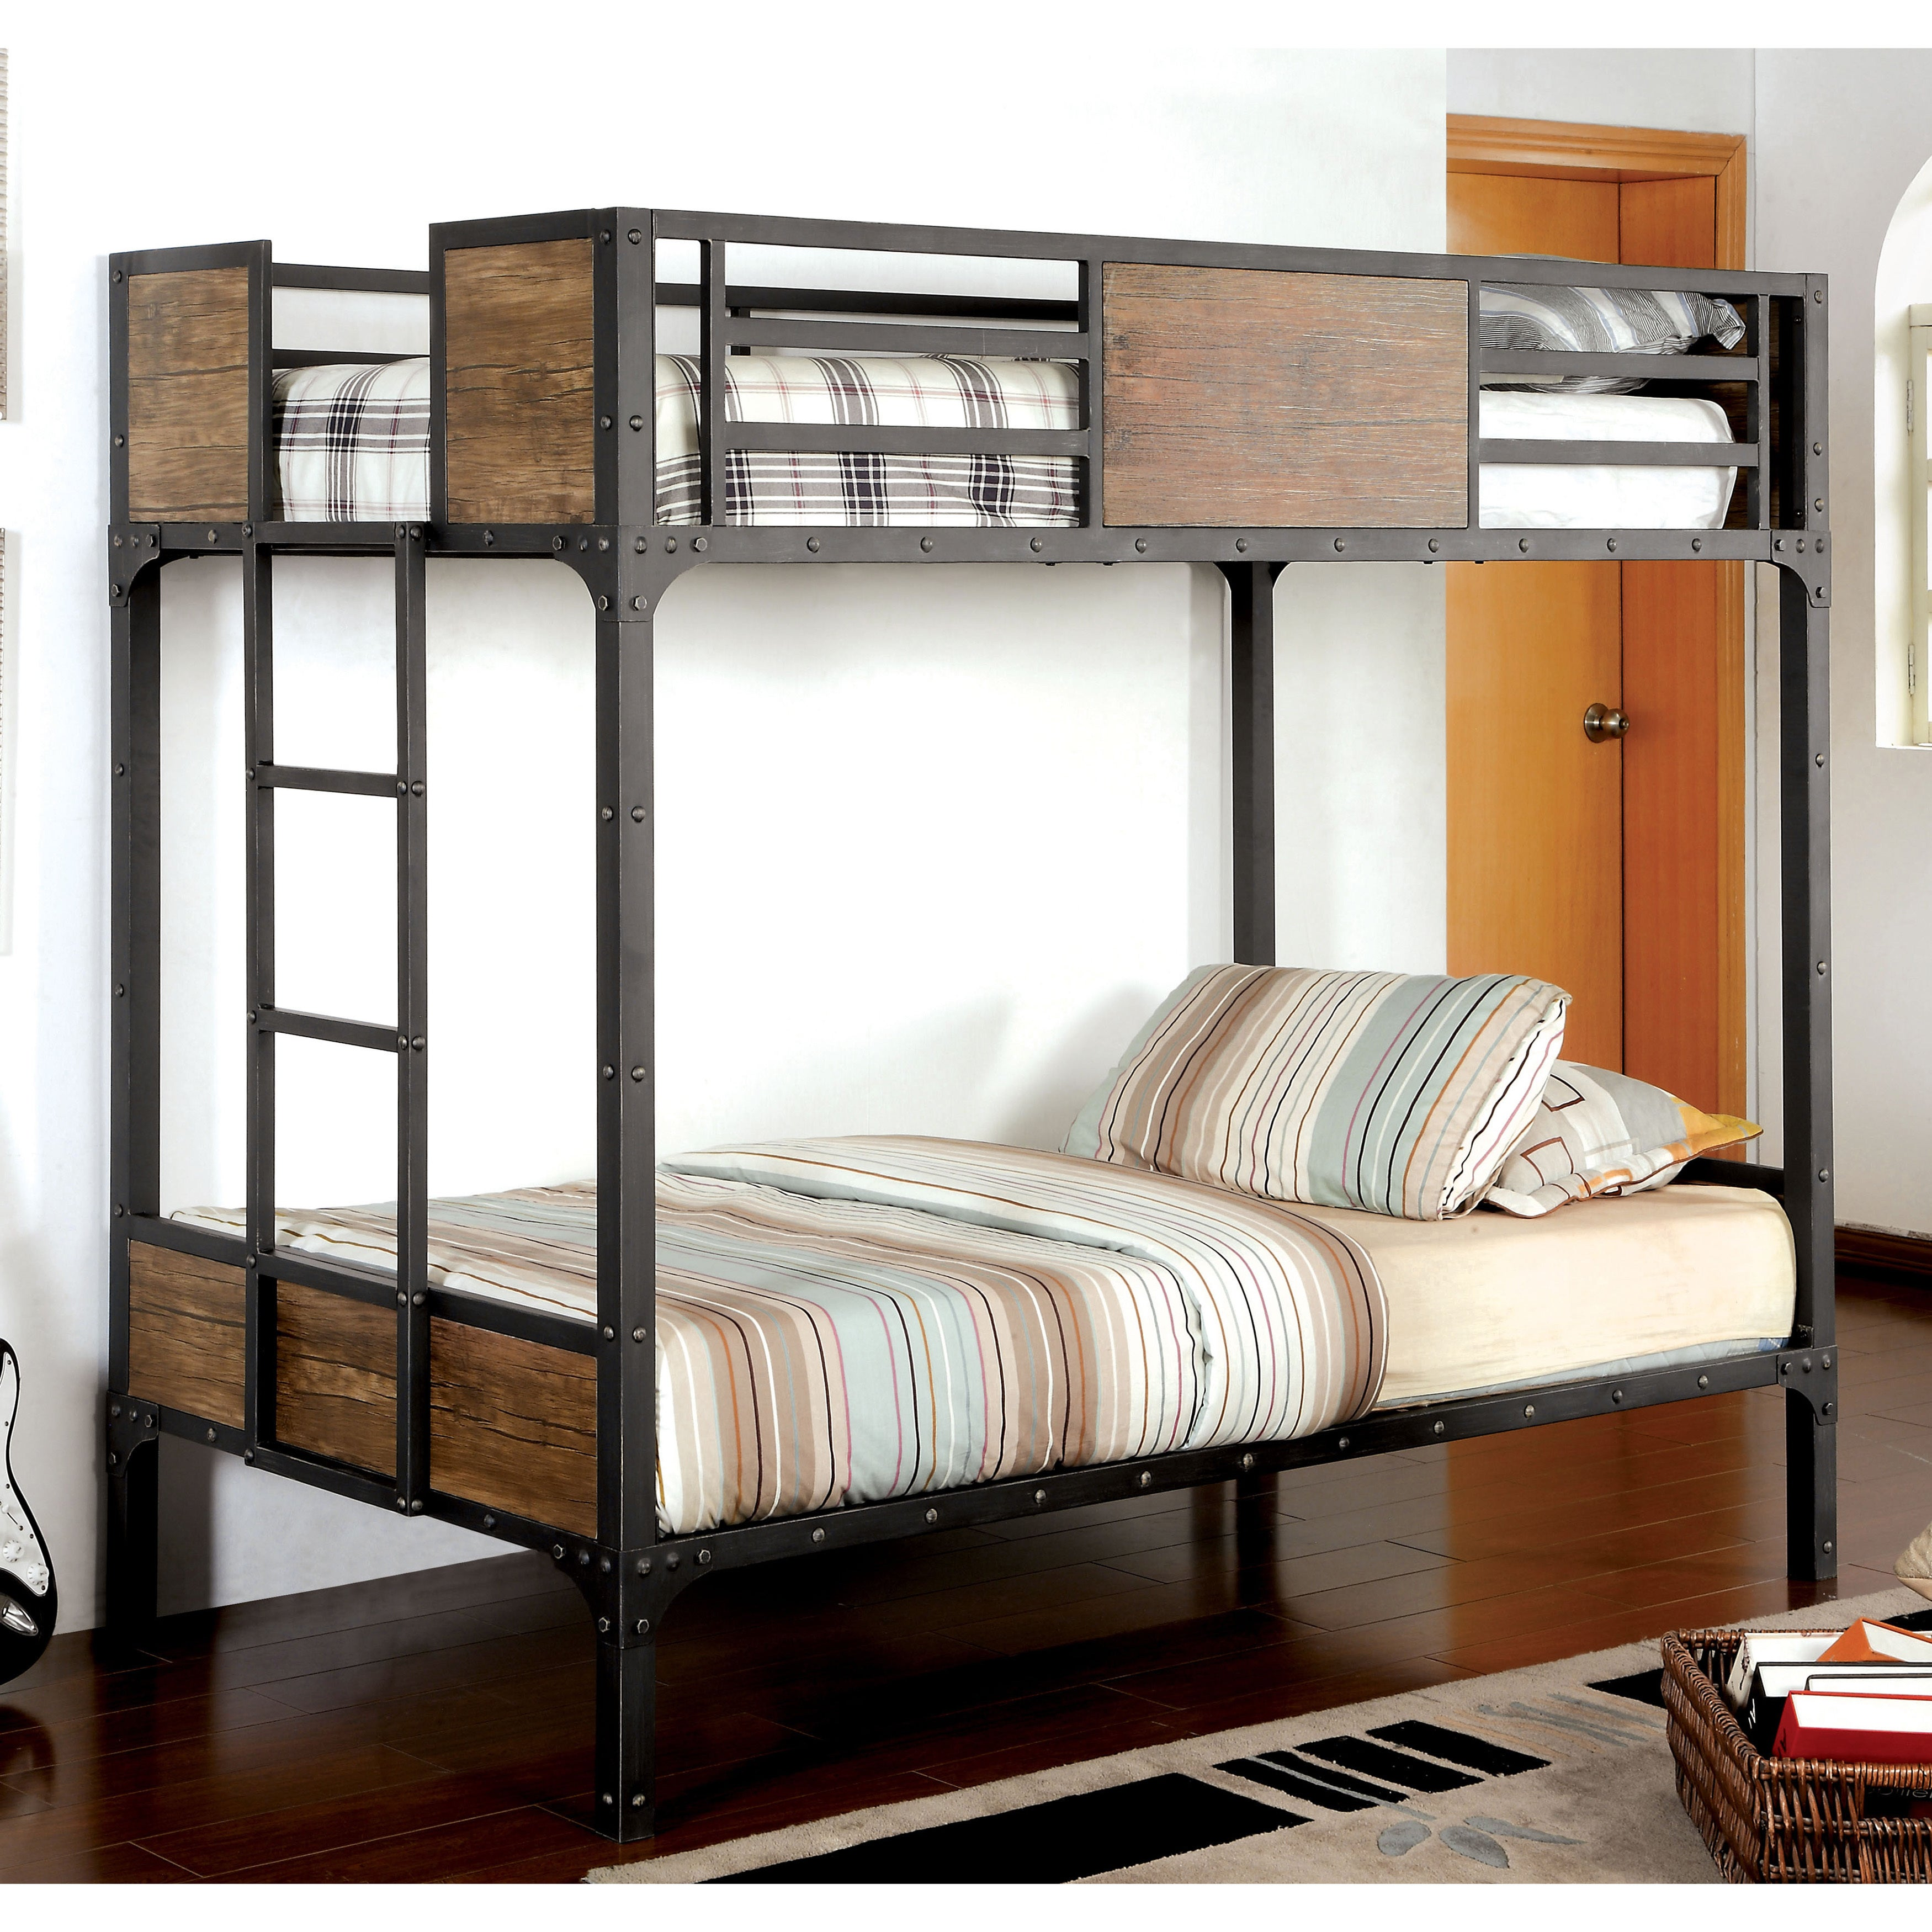 Shop Furniture of America Markain Industrial Metal Bunk Bed - On ...